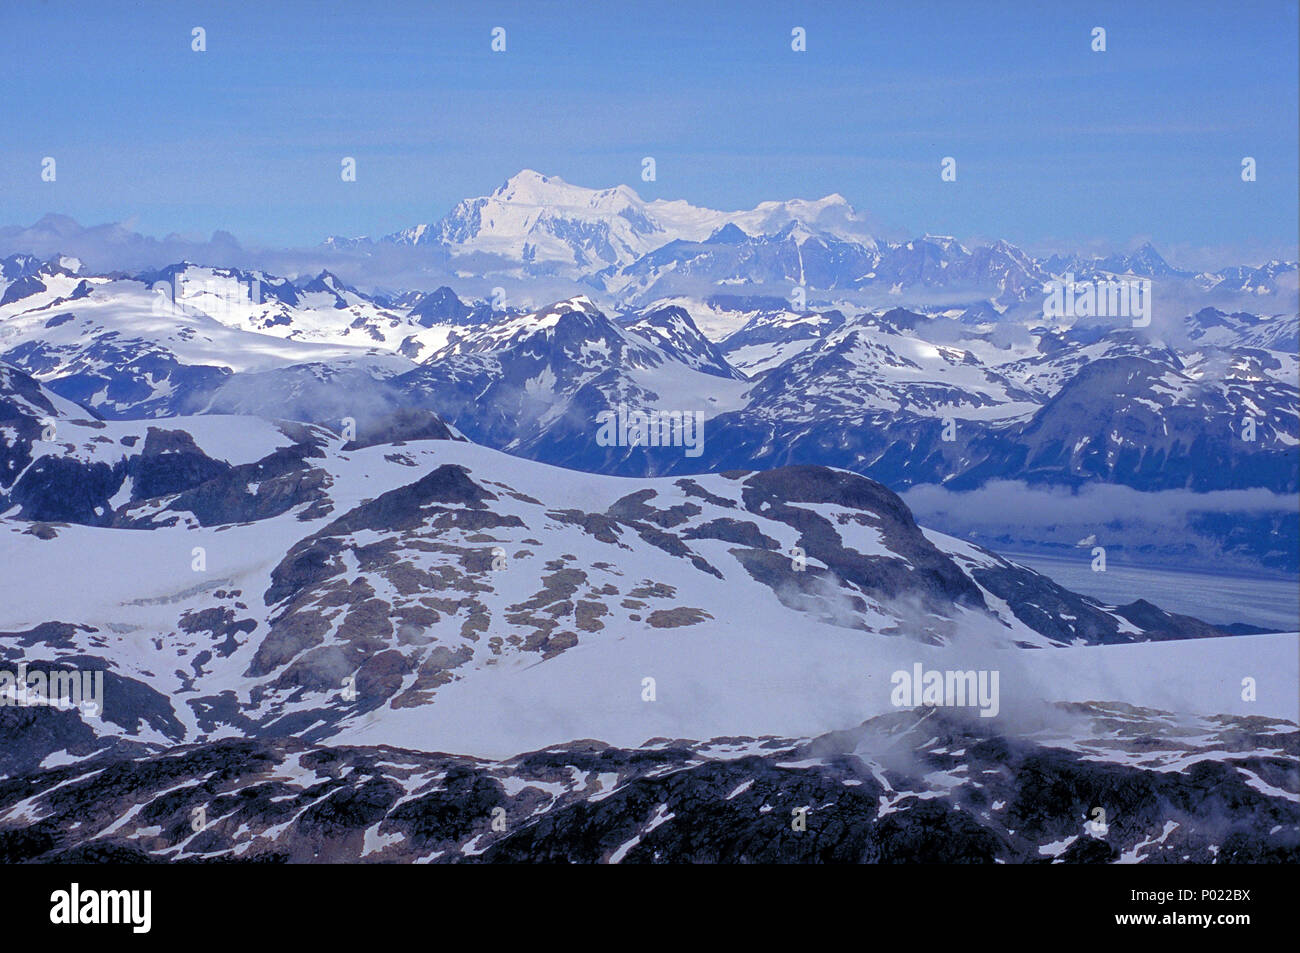 Yukon, verschneite Berge, grandiose Landschaften, Yukon, Kanada | Great landscapes, snow covered mountains, Alaska range, Yukon, Canada - Stock Image